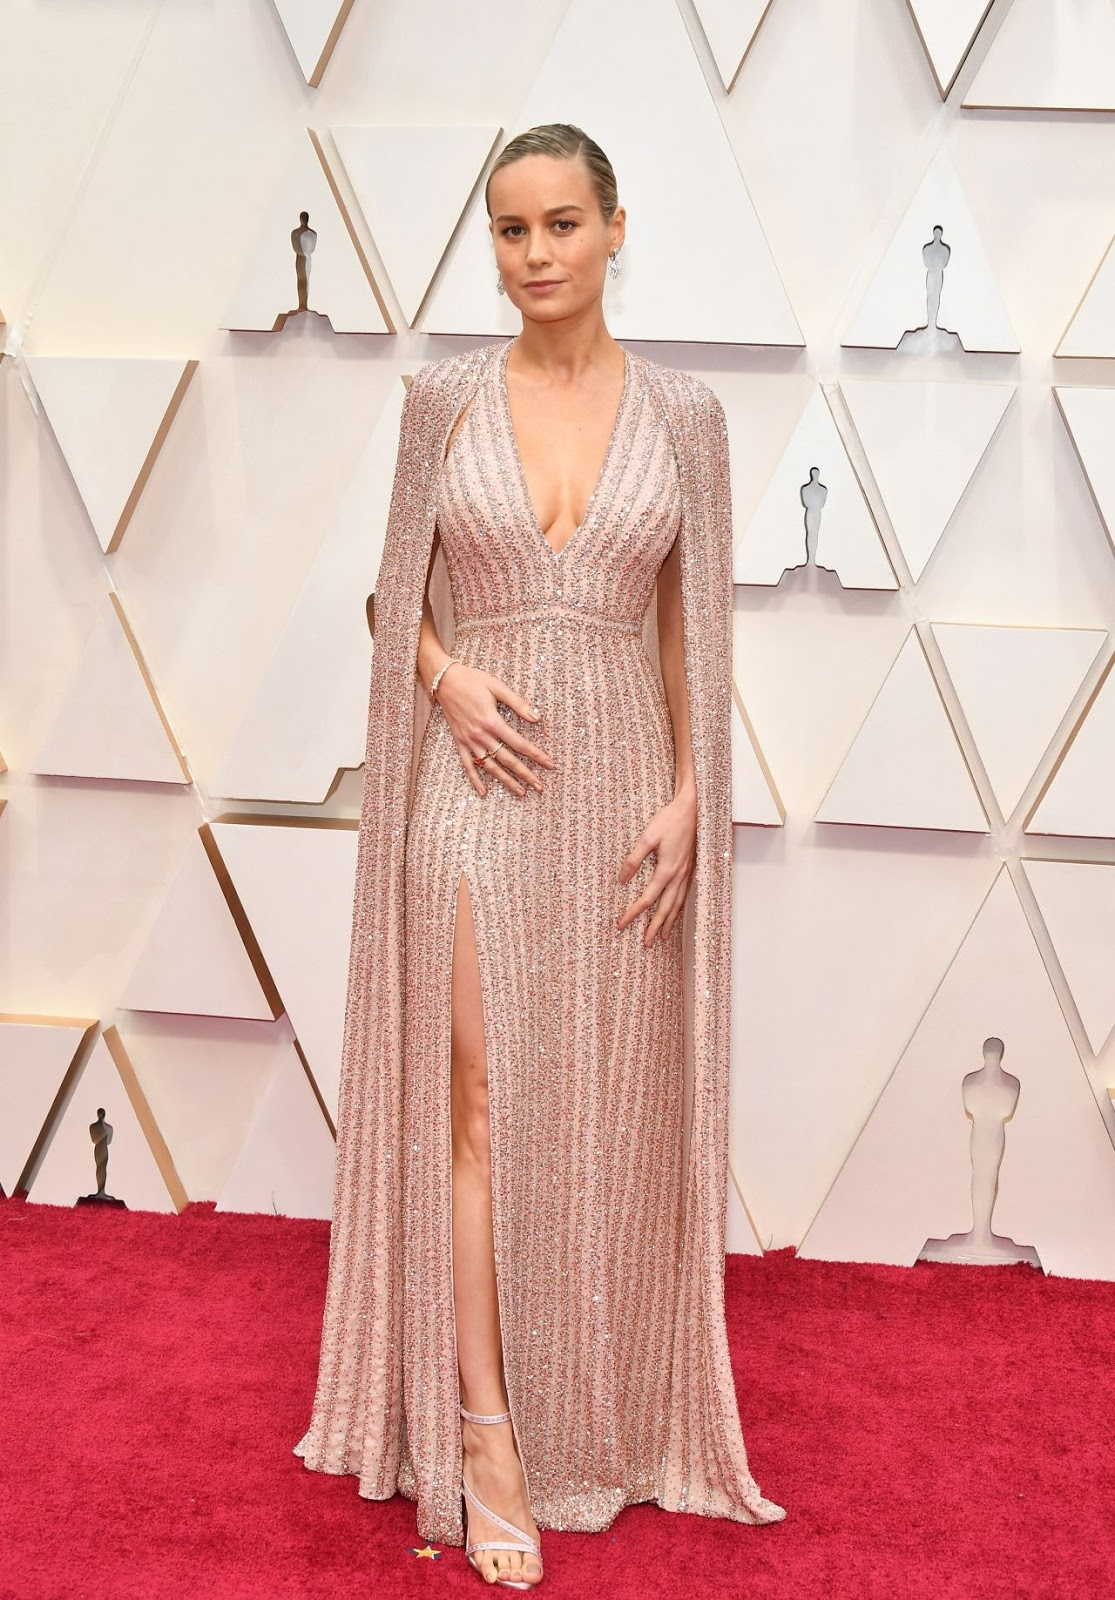 Brie Larson takes the plunge in pink sparkly caped Celine gown to present at the Academy Awards